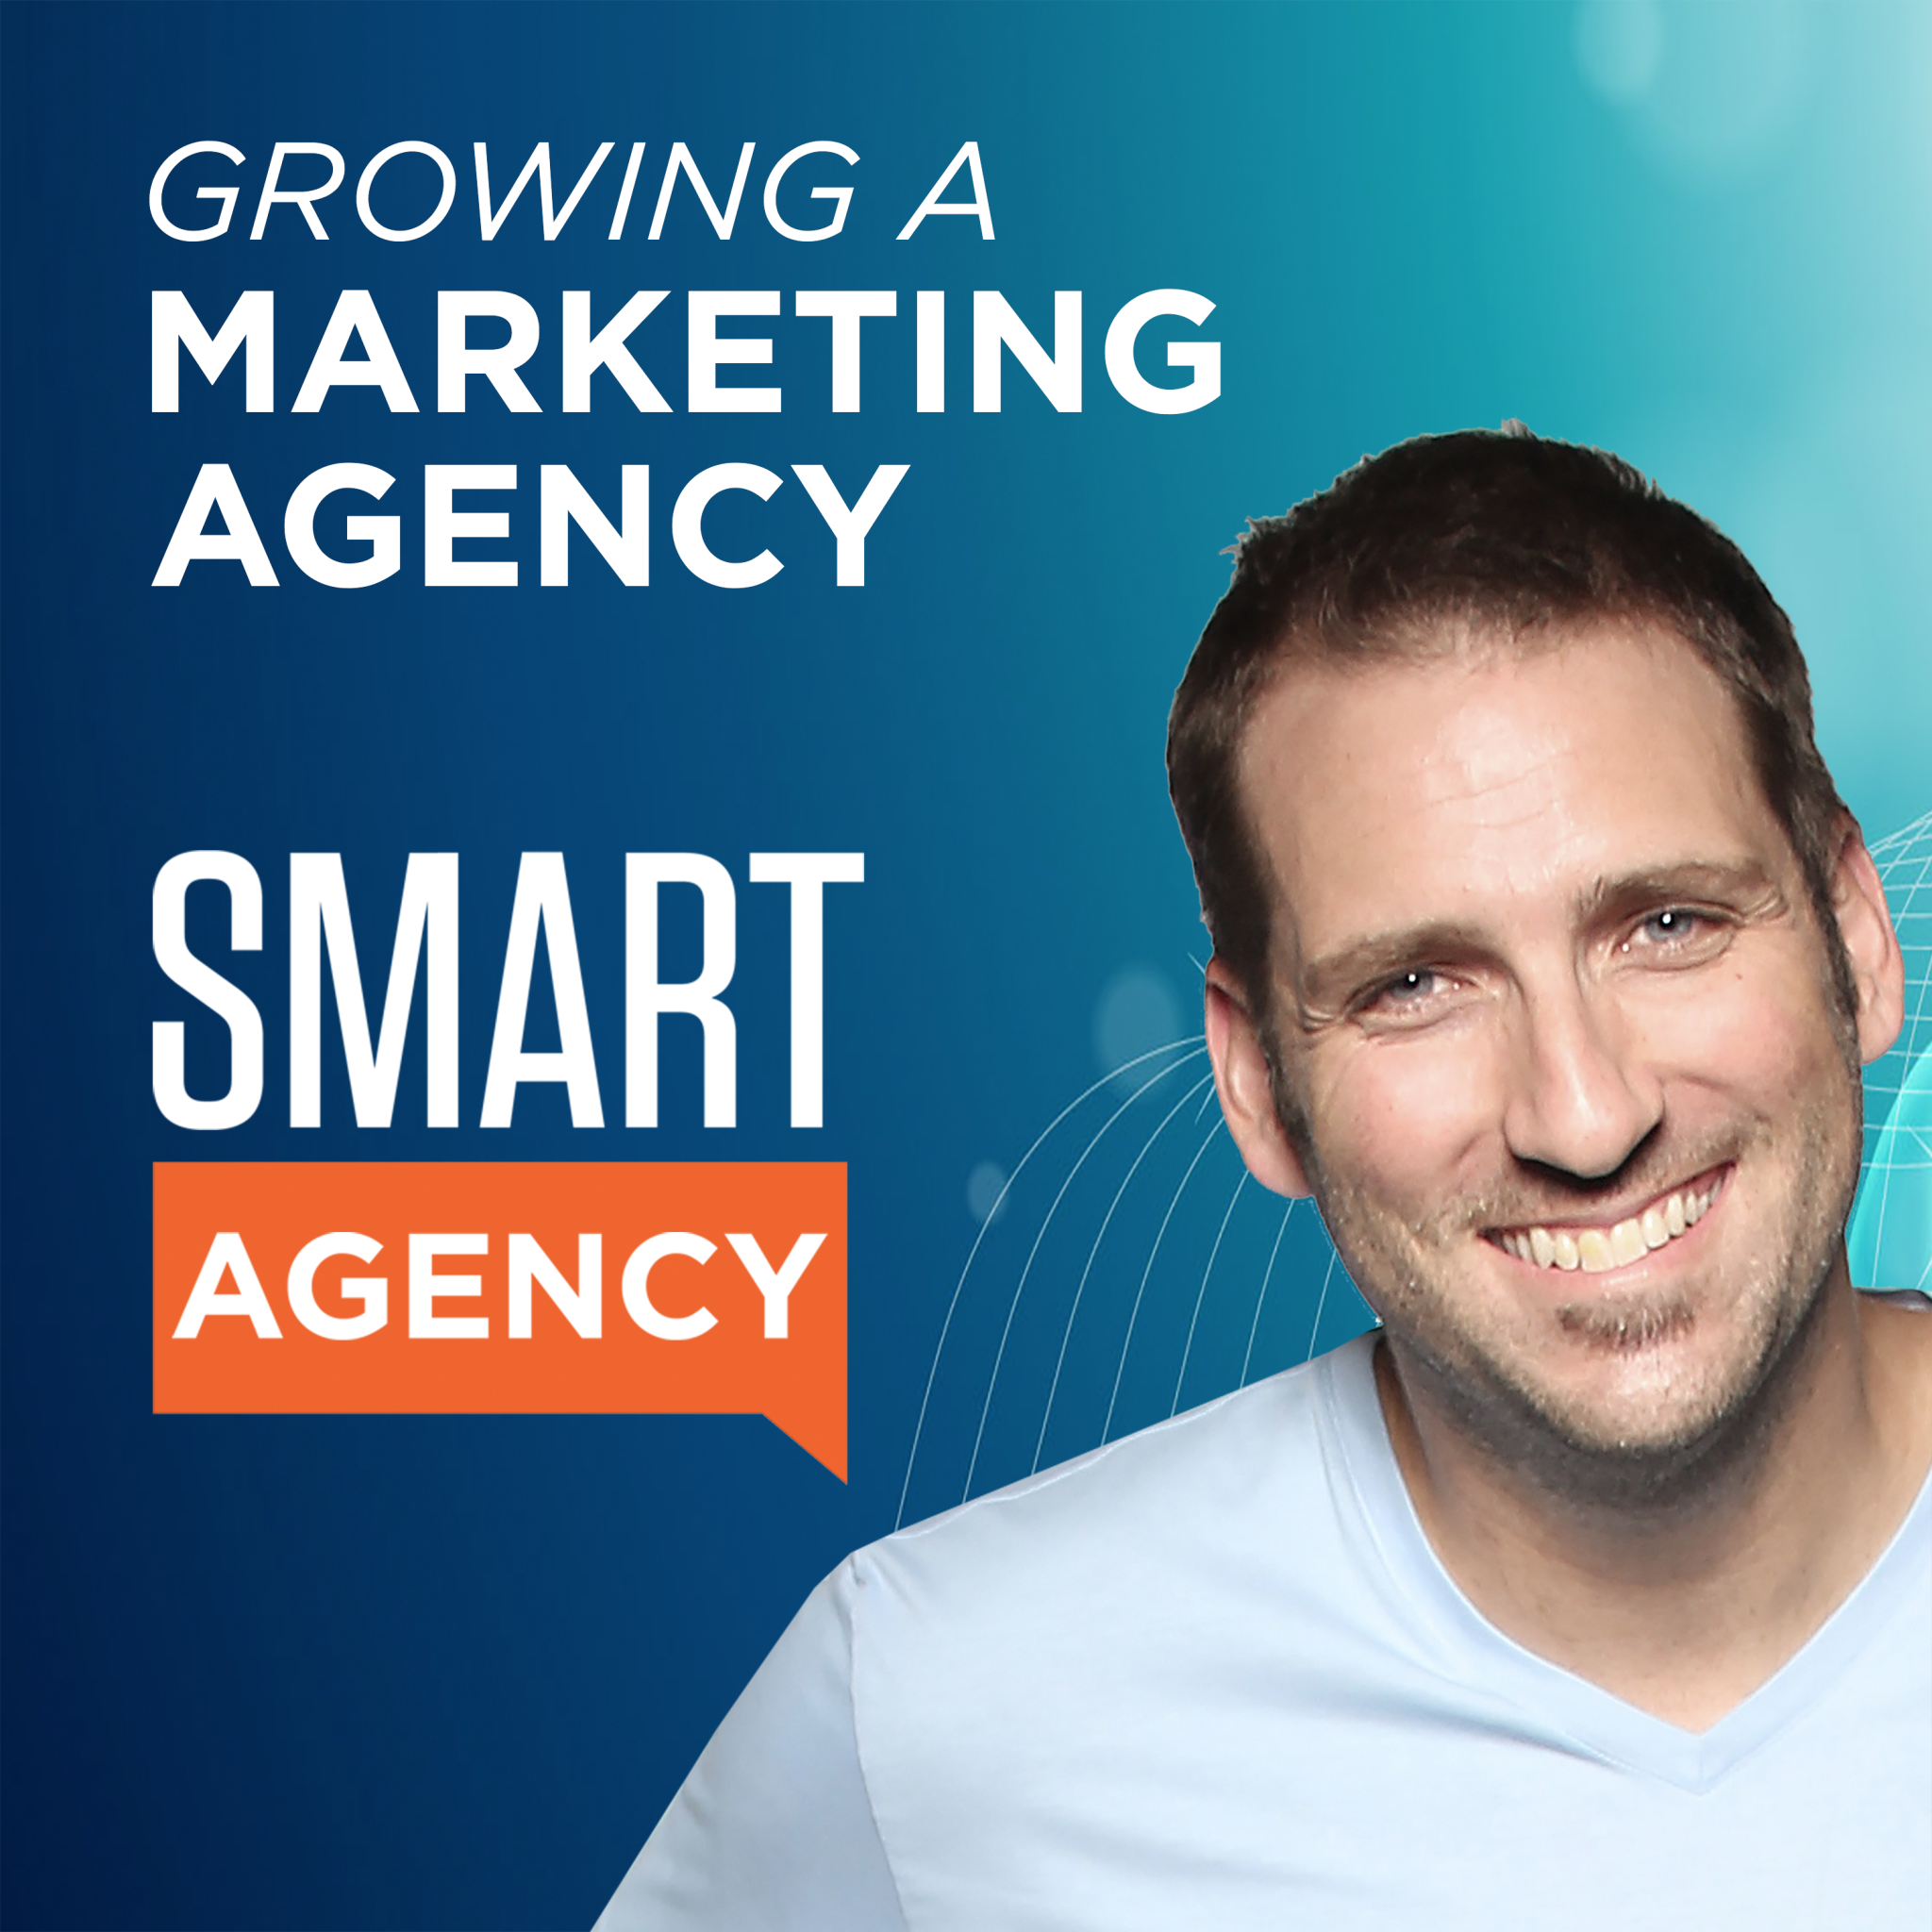 Interviews of Agency Owner's Who Share Their Stories of Growing, Scaling, & Selling Their Agencies.